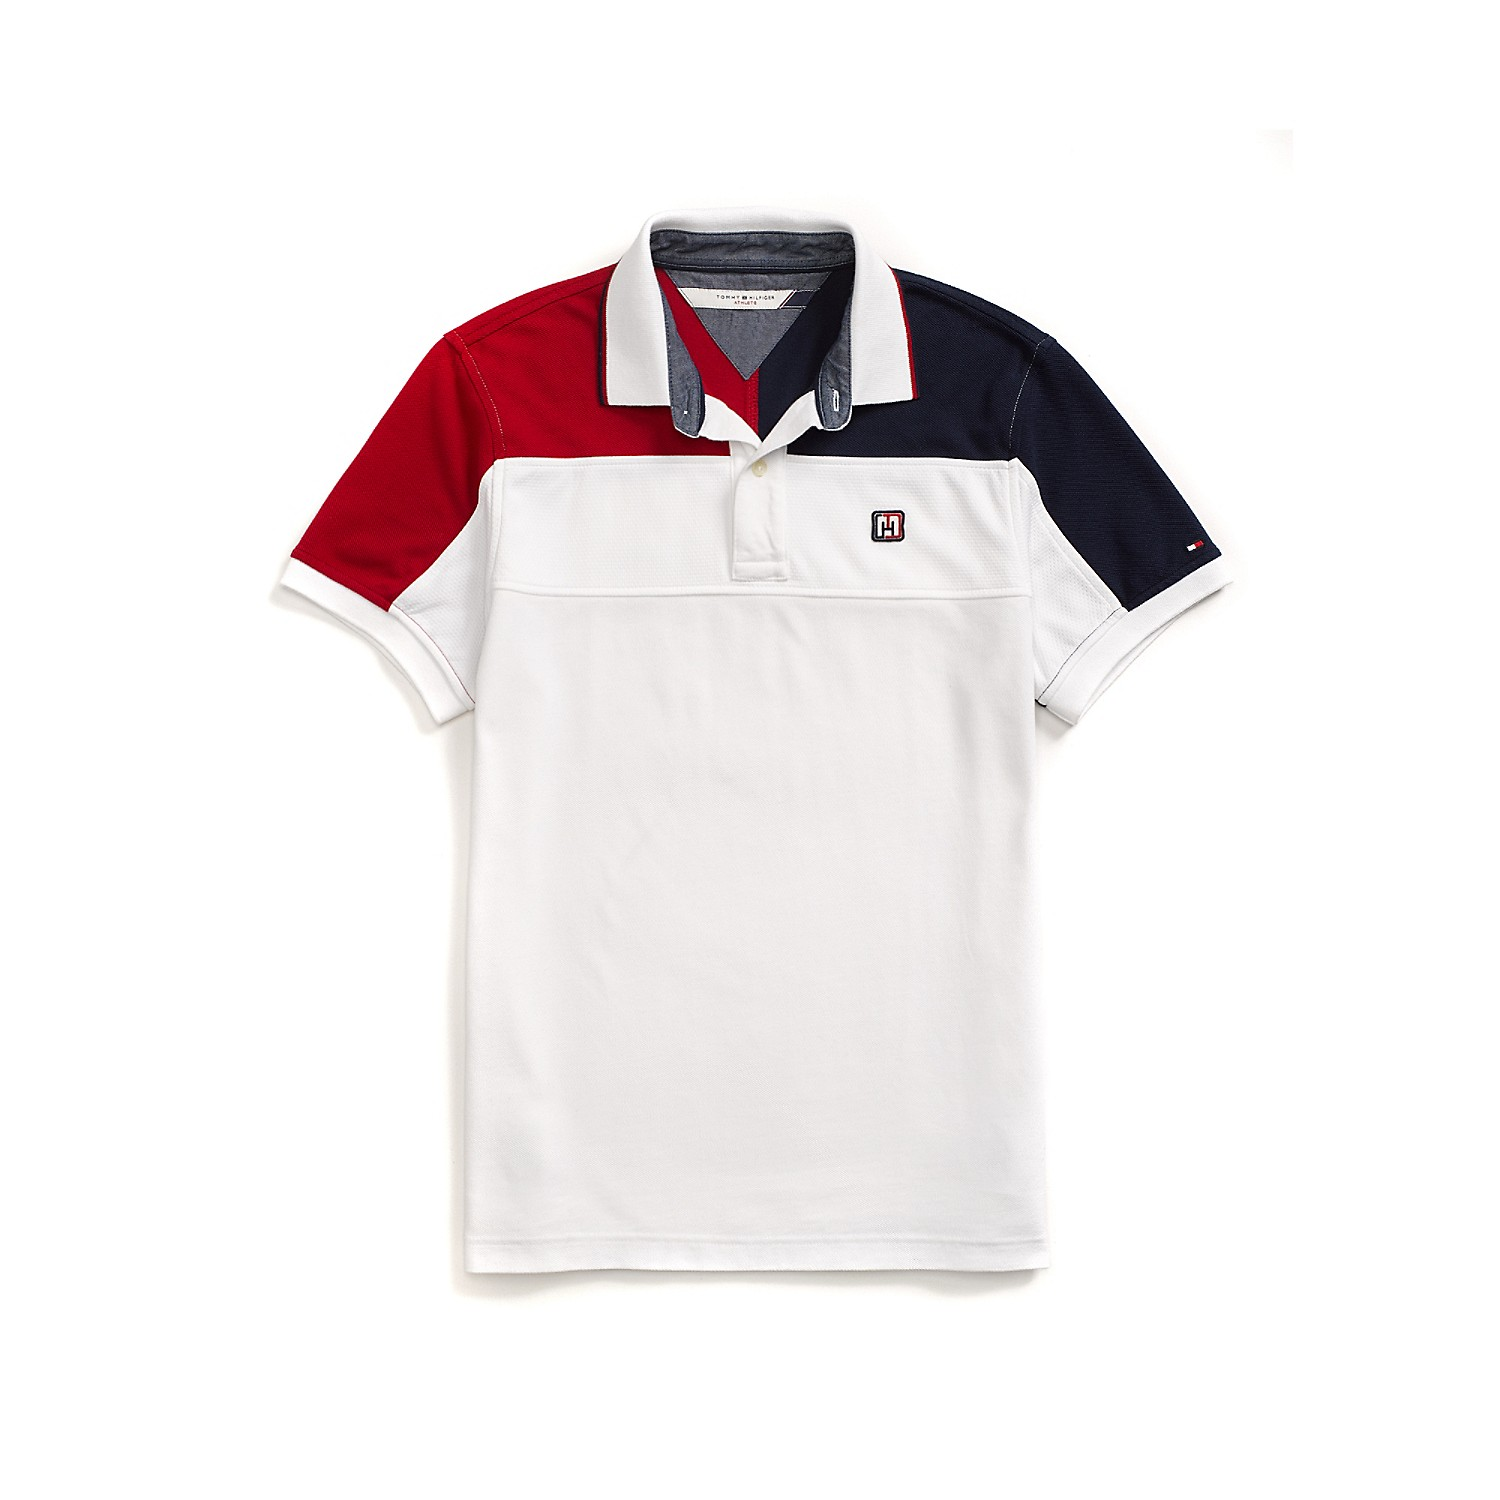 camisas tommy hilfiger tipo polo 8a27dcd8d7251